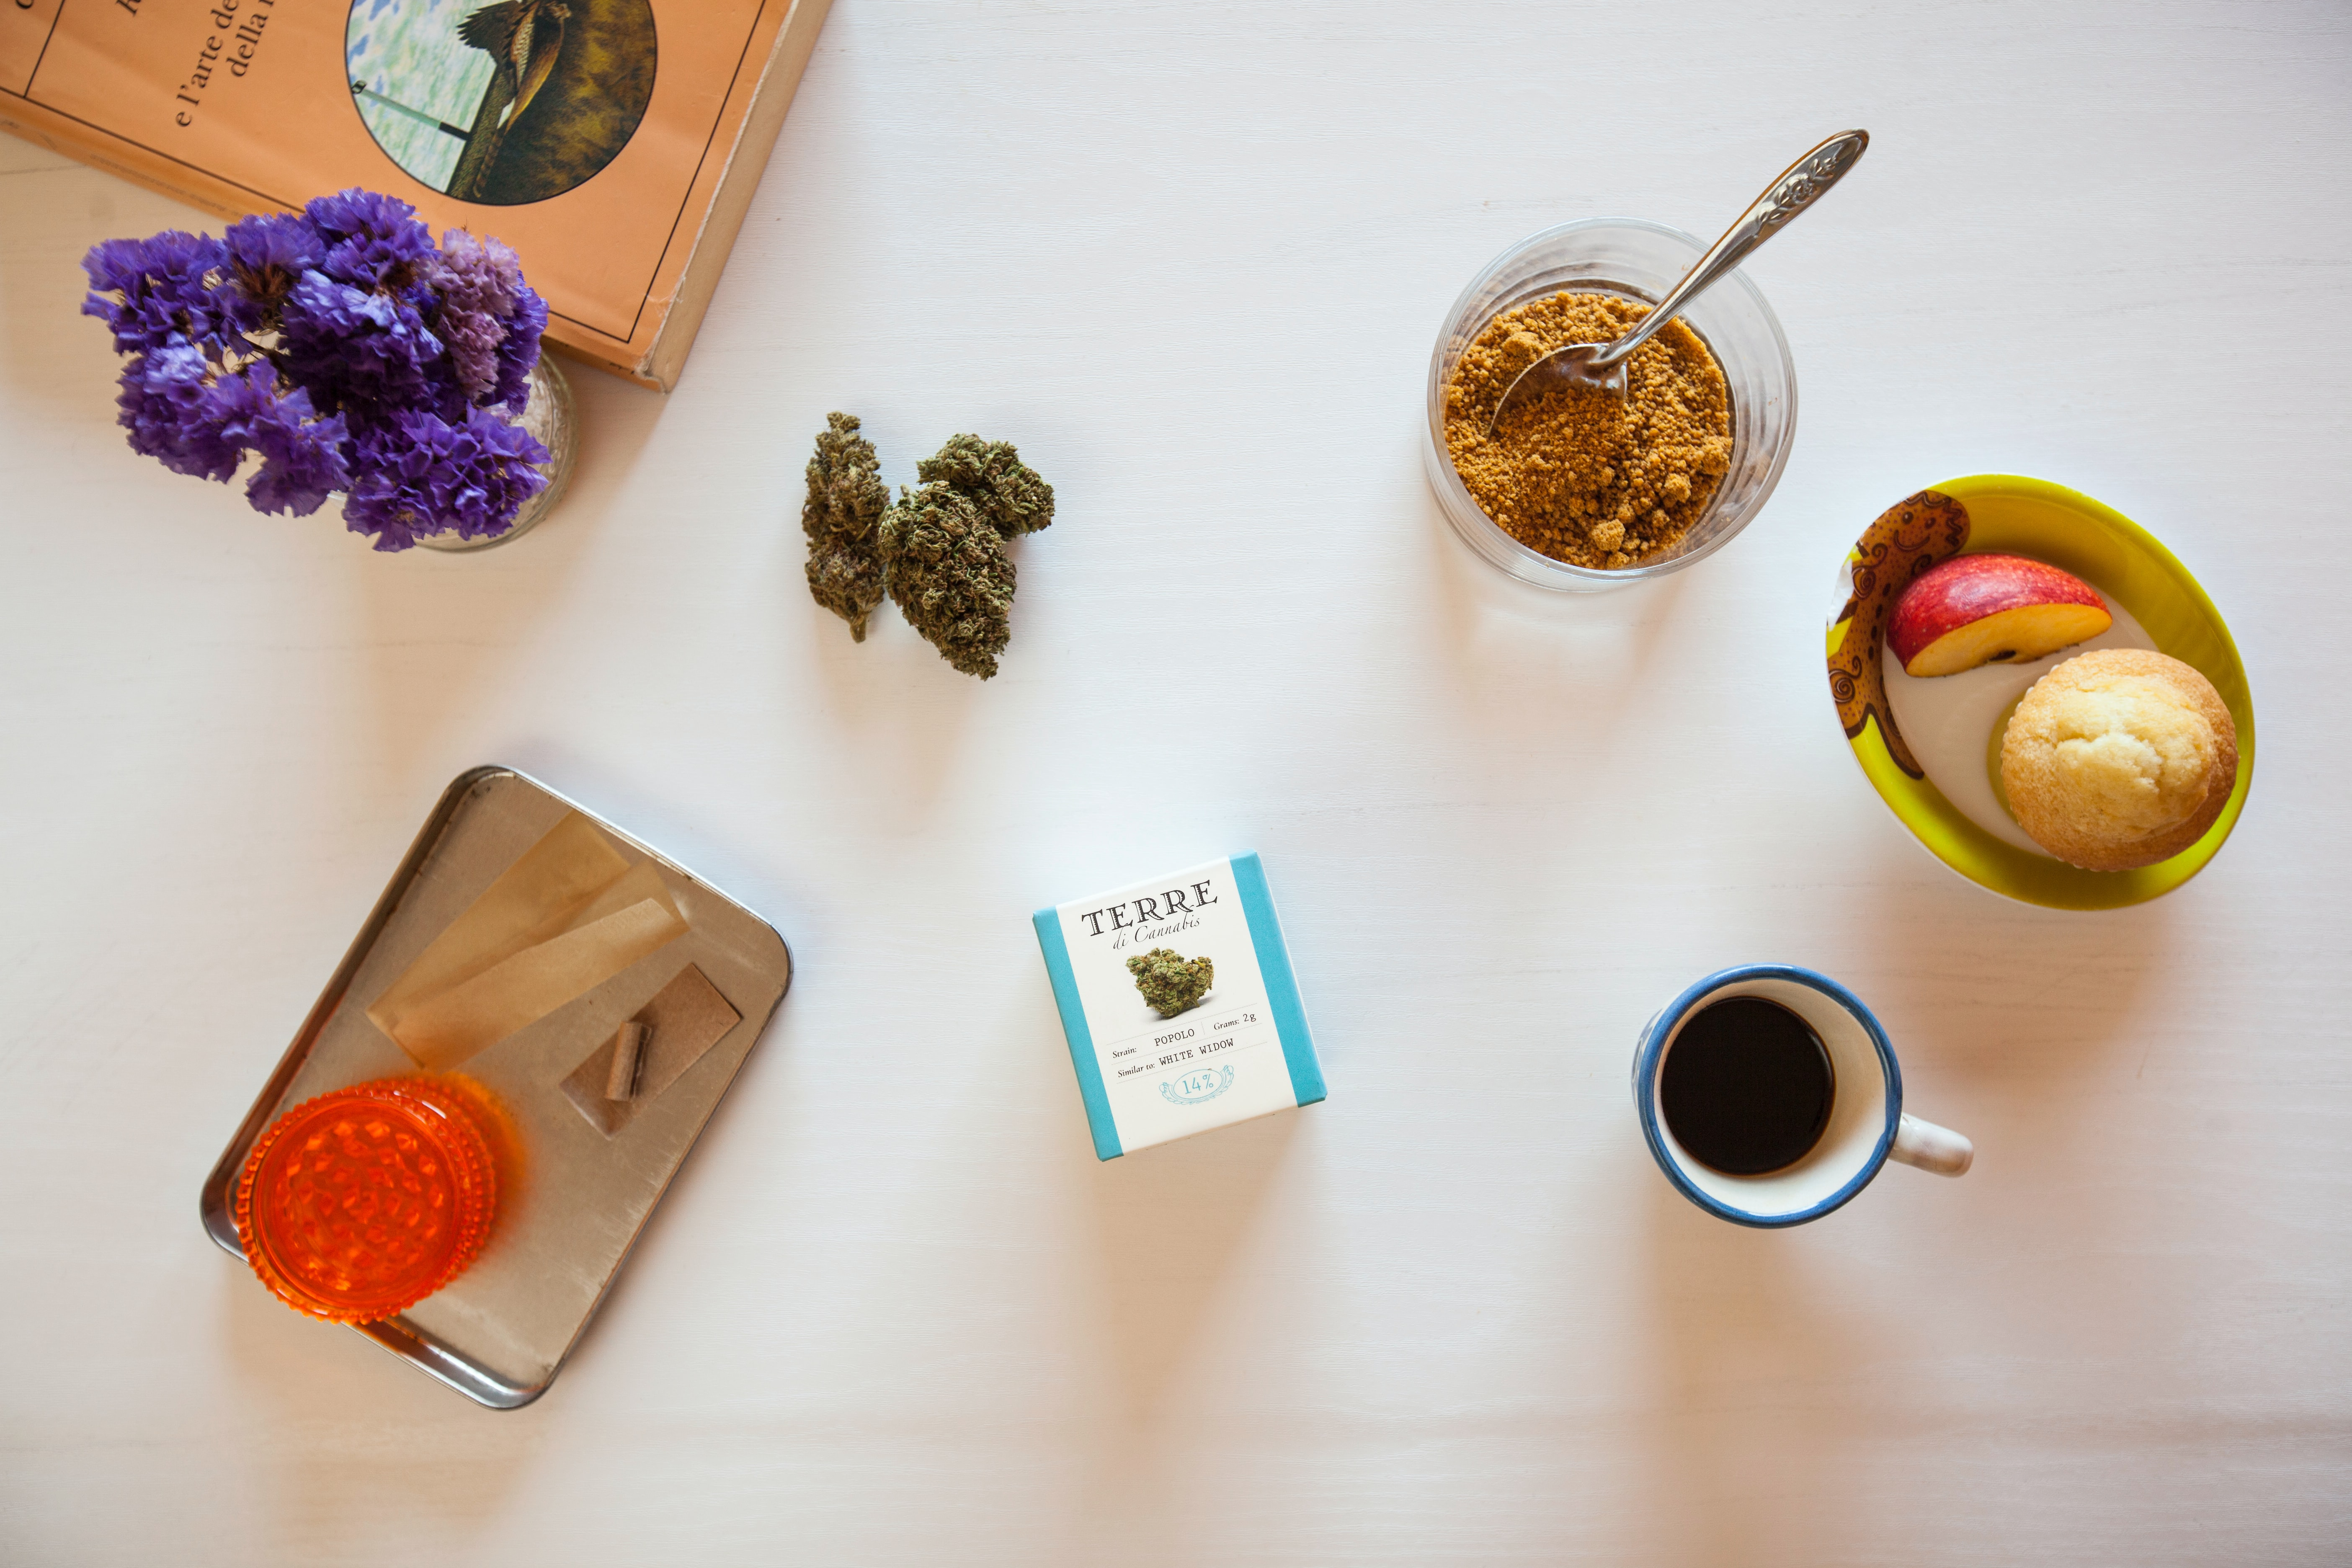 11 Weed gifts for a cannabis enthusiast